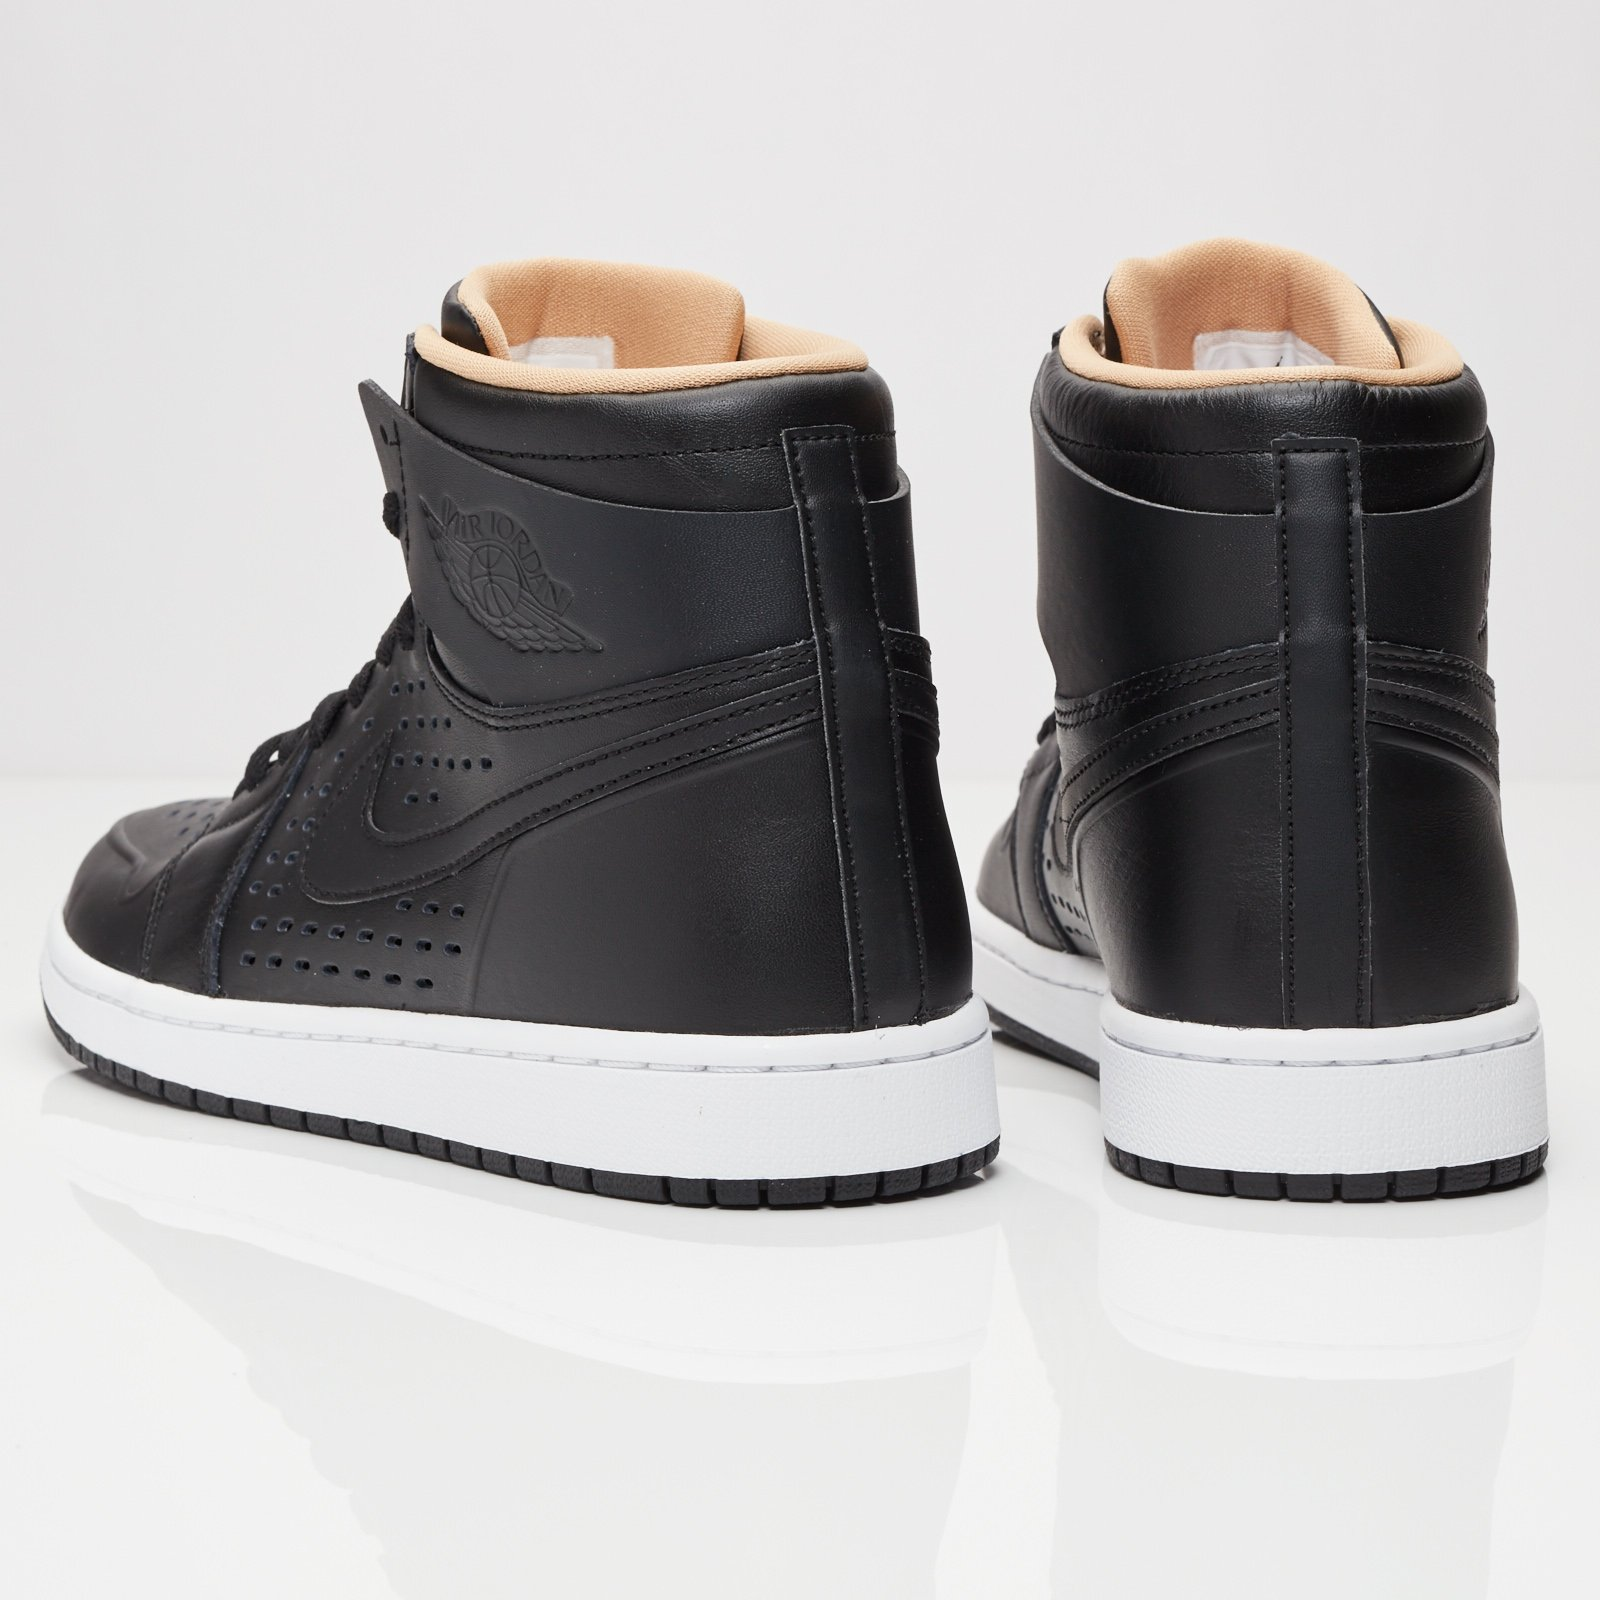 27a8043d82e832 Jordan Brand Air Jordan 1 Retro High - 845018-030 - Sneakersnstuff ...